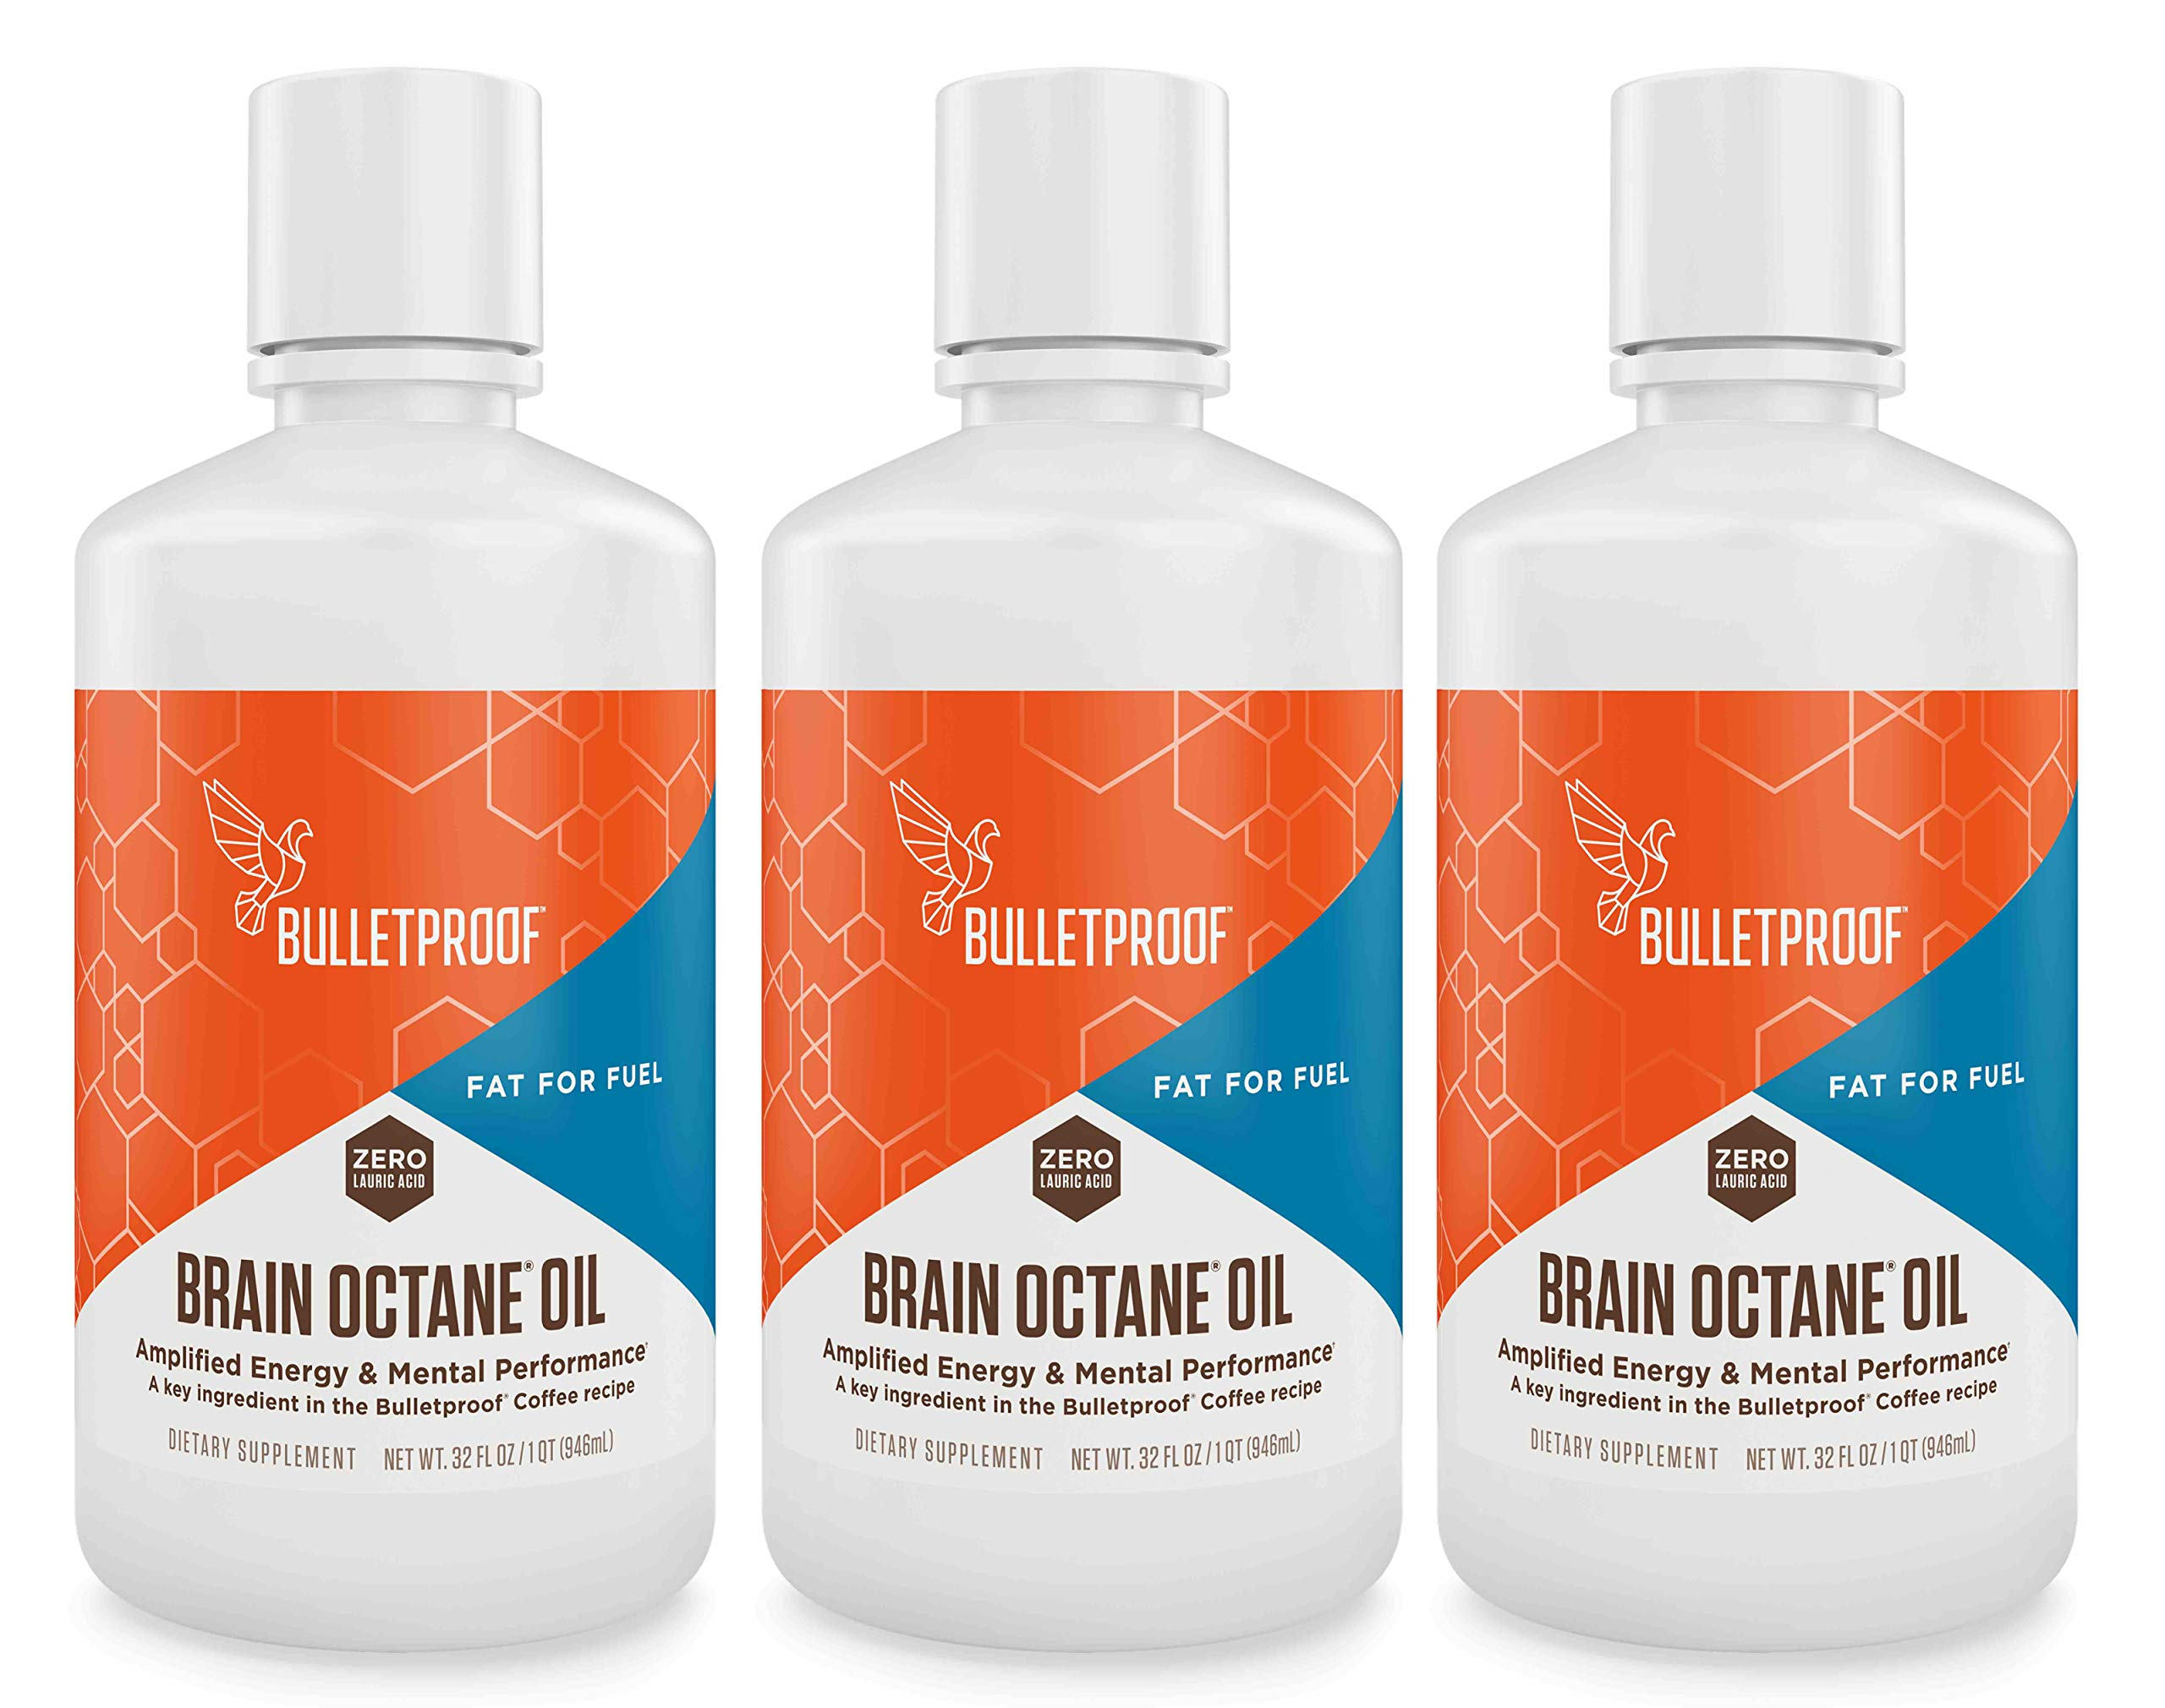 Bulletproof Brain Octane MCT Oil, Perfect for Keto and Paleo Diet, 100% Non-GMO Premium C8 Oil, Ketogenic Friendly, Responsibly Sourced from Coconuts Only, Made in The USA (3-Pack of 32oz) by Bulletproof